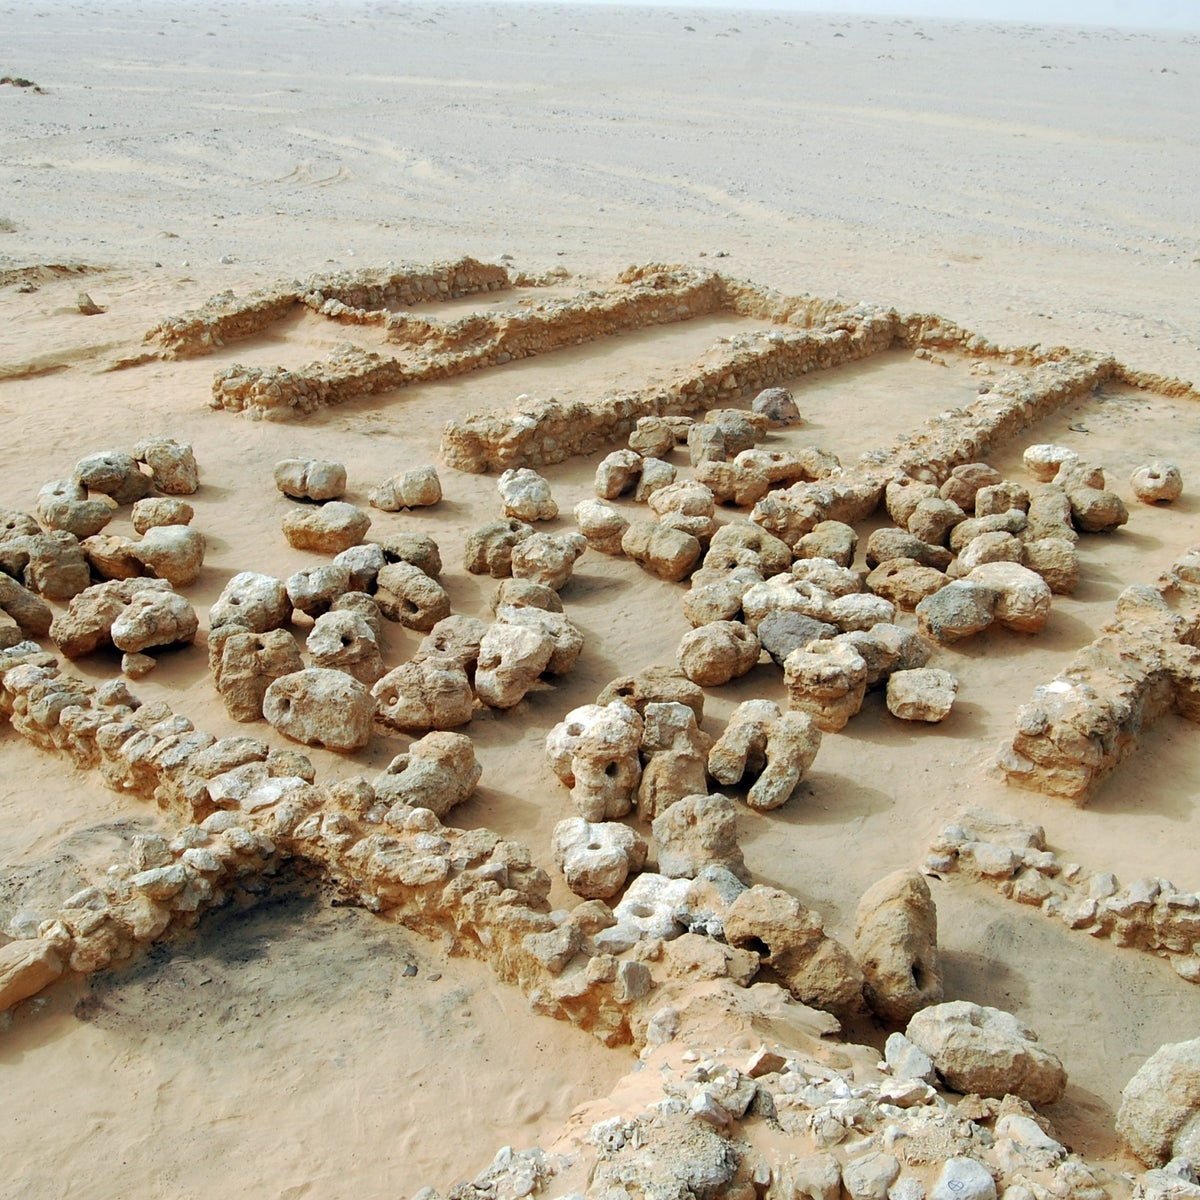 Remains of the harbor structure by the Red Sea and the anchor deposits, near Wadi el-Jarf. The harbor was built by King Cheops to import materials for the construction of the Great Pyramid of Giza.